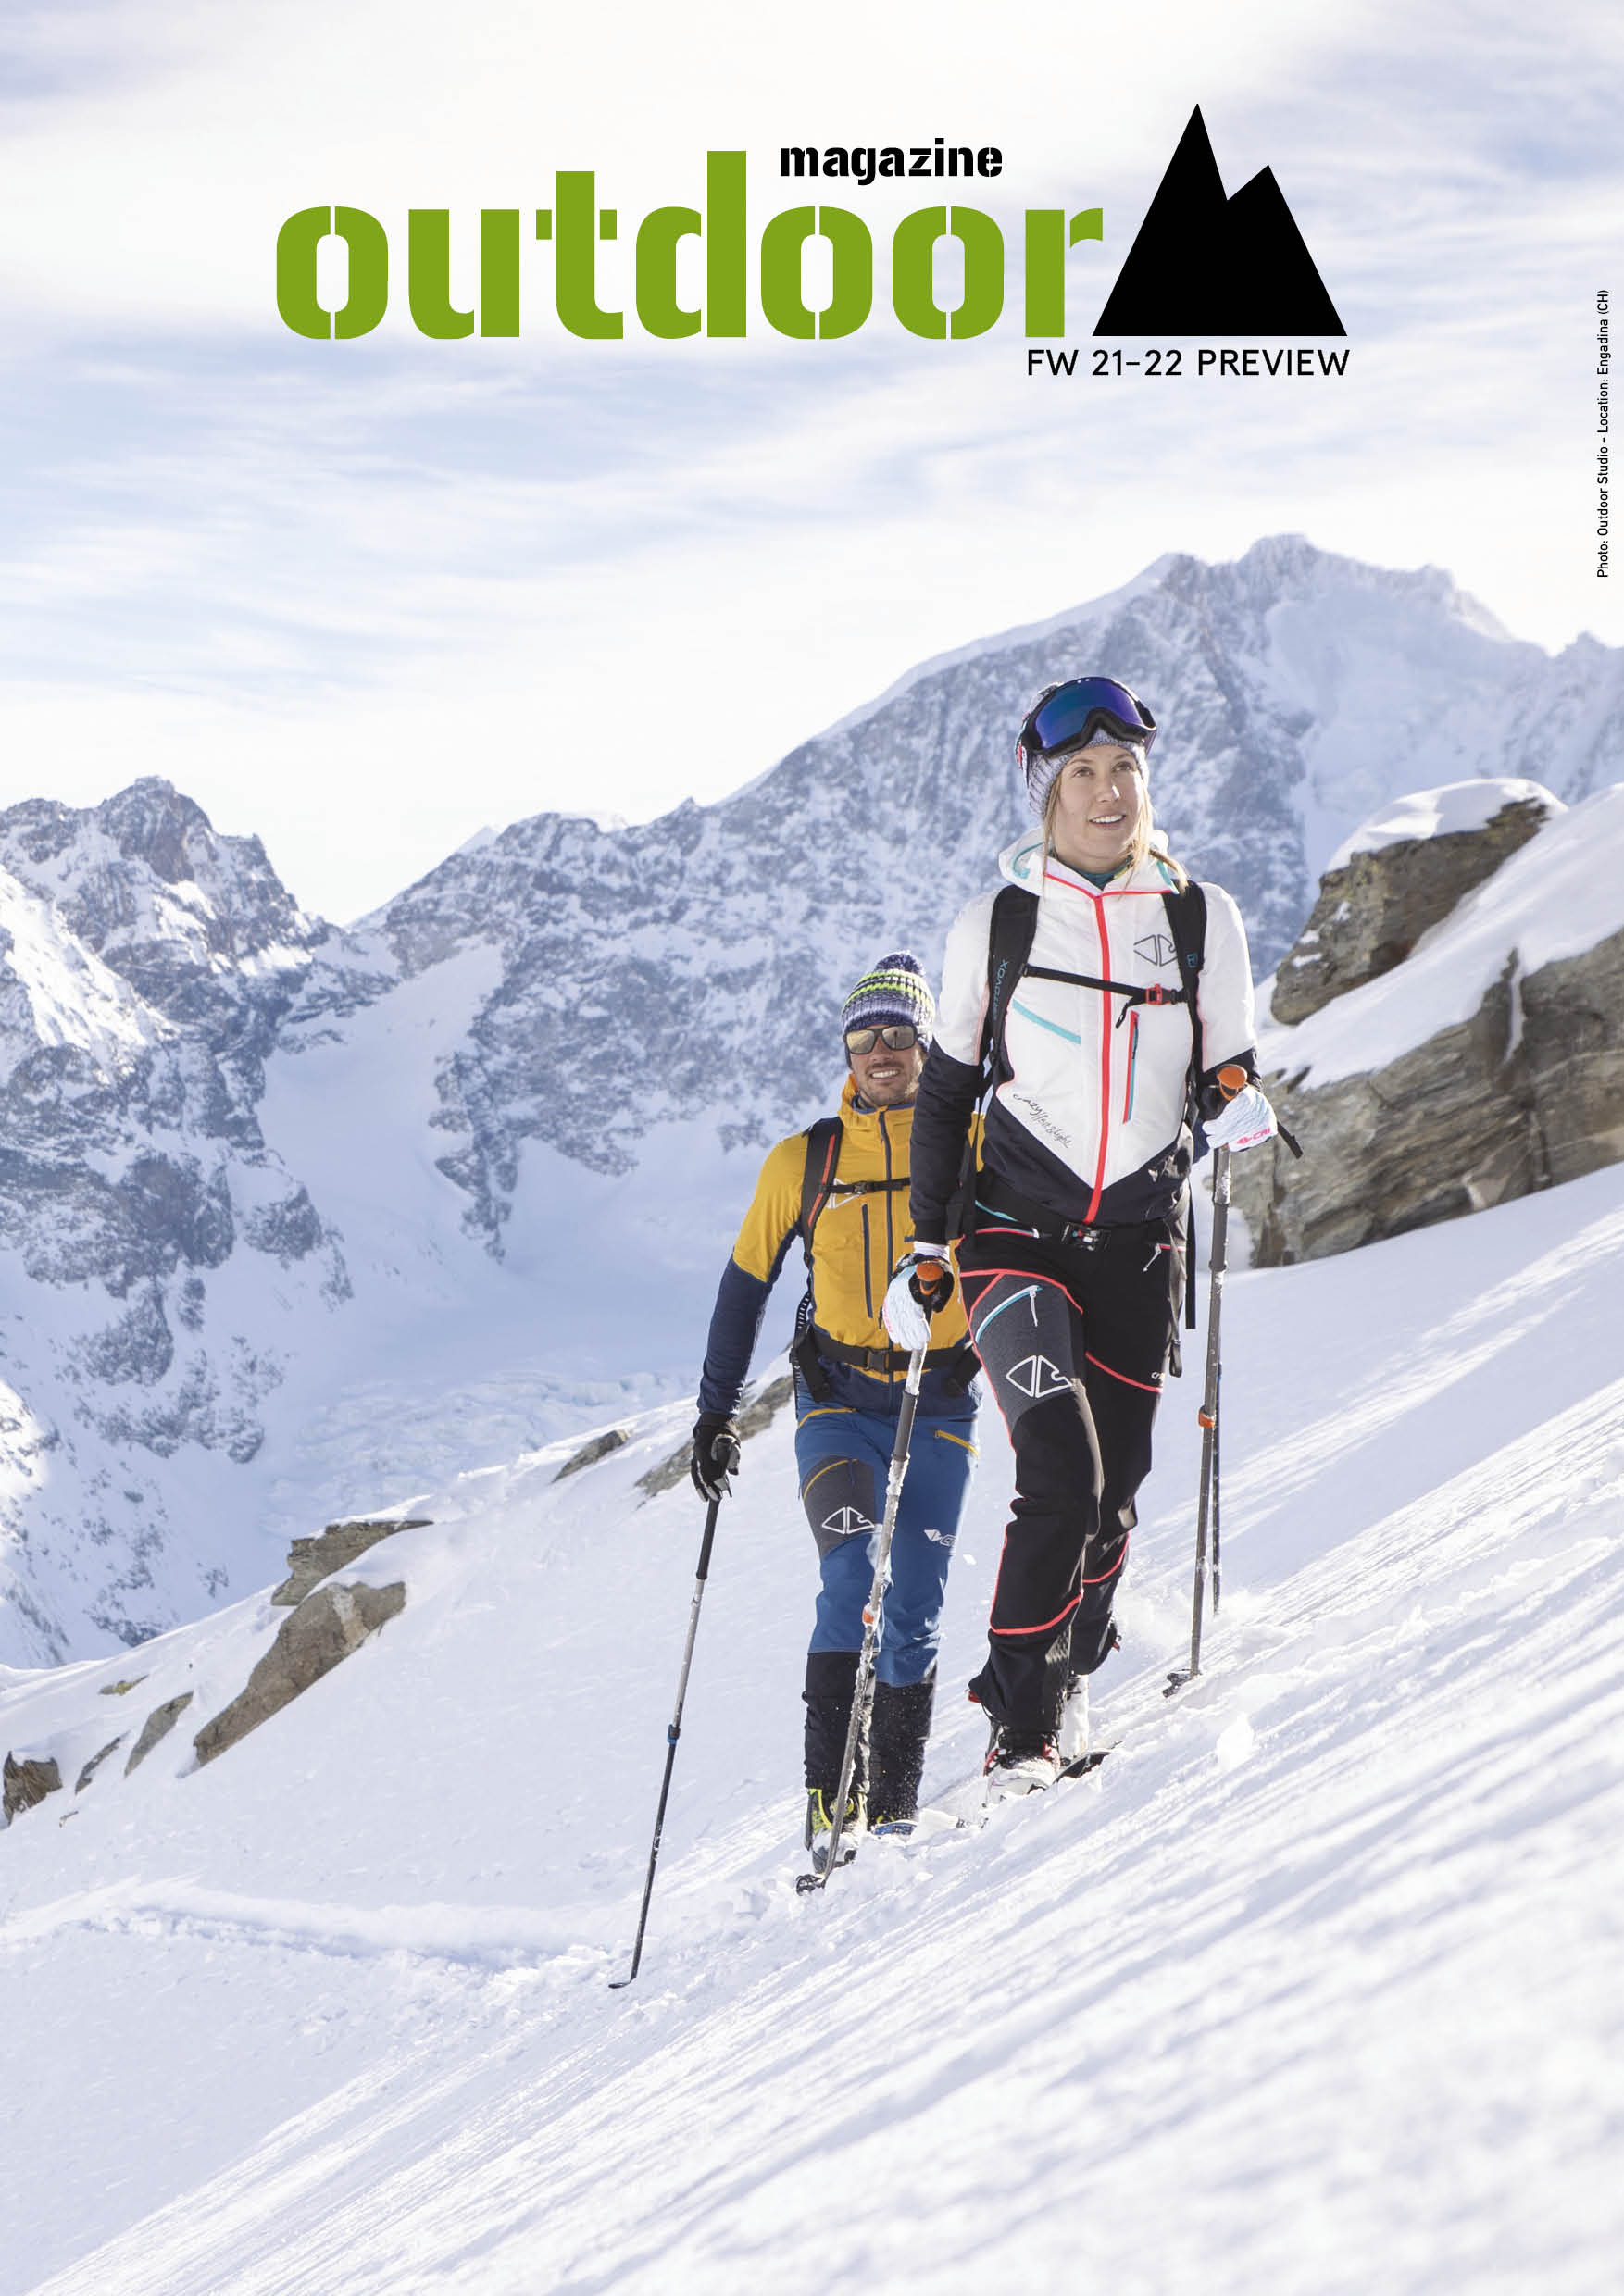 Outdoor Magazine FW 21-22 Preview #2